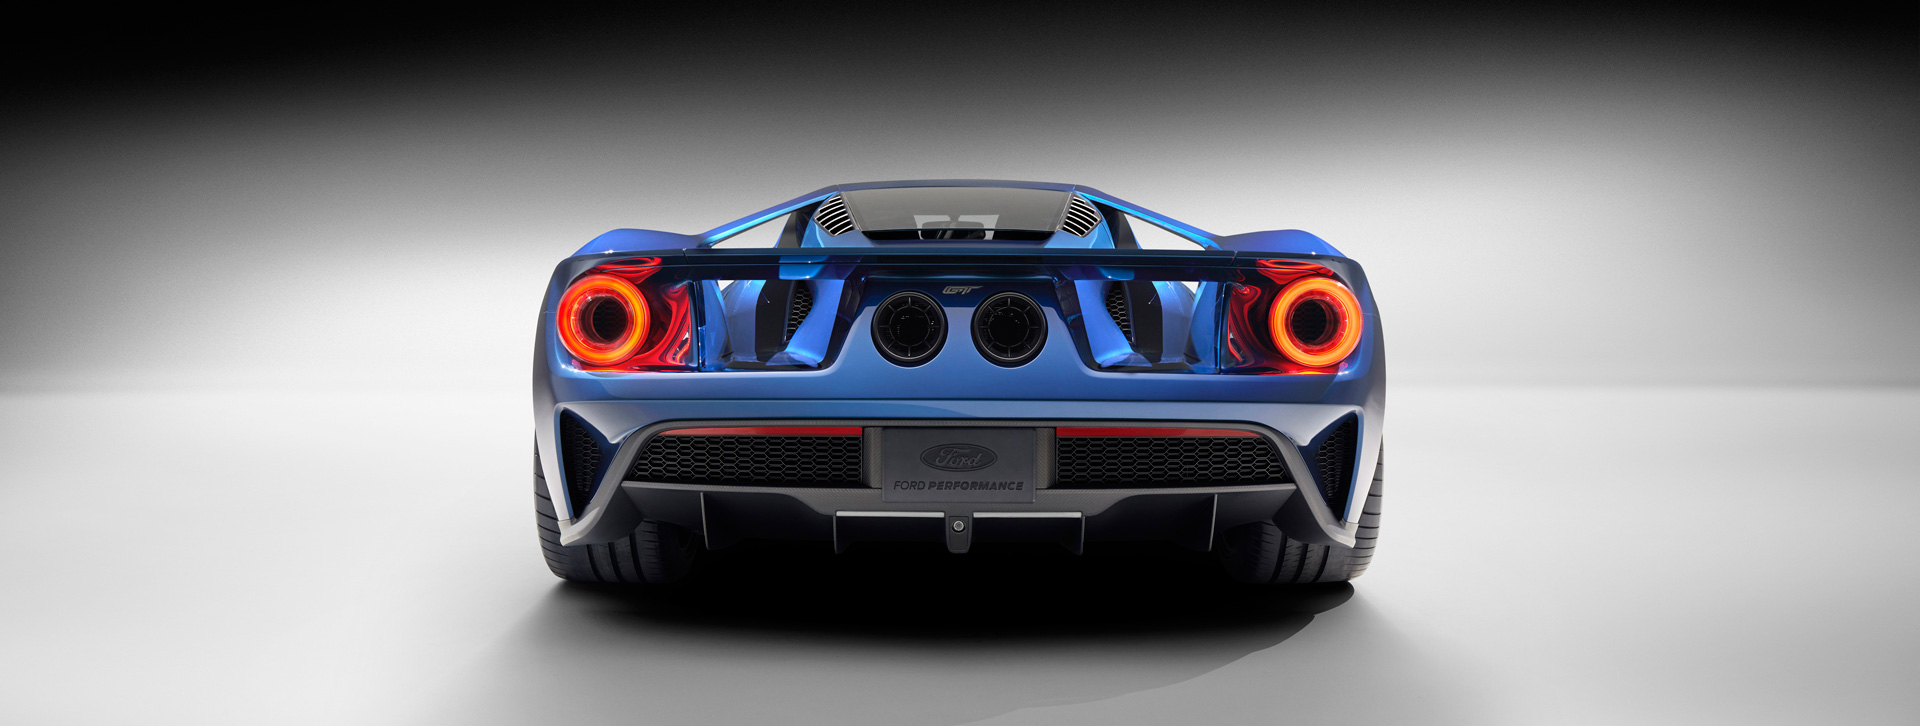 2016 All-New Ford GT - face arrière - Ford